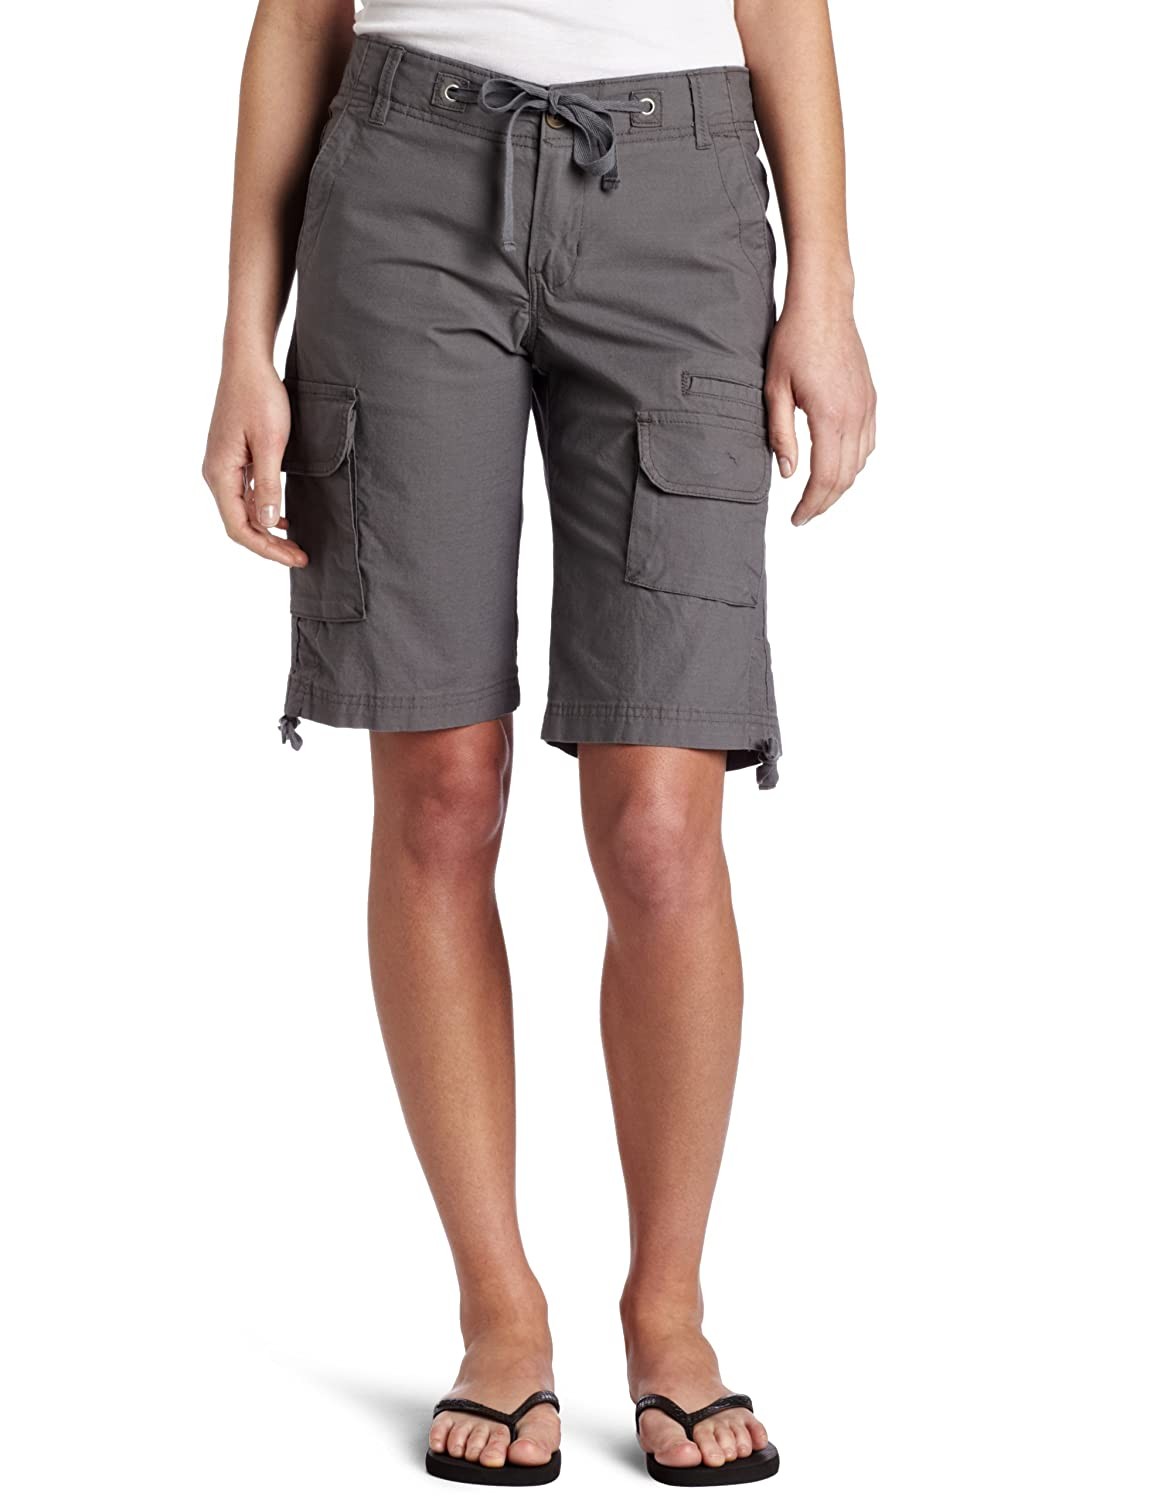 Shop Womens Shorts at Surf Fanatics. Our Surf Shop has the newest Board Shorts for Women selection including Womens Cargo Shorts for riders. Shop for Womens Shorts at our Moto Shop and get Free Shipping on every order of $50 or more.